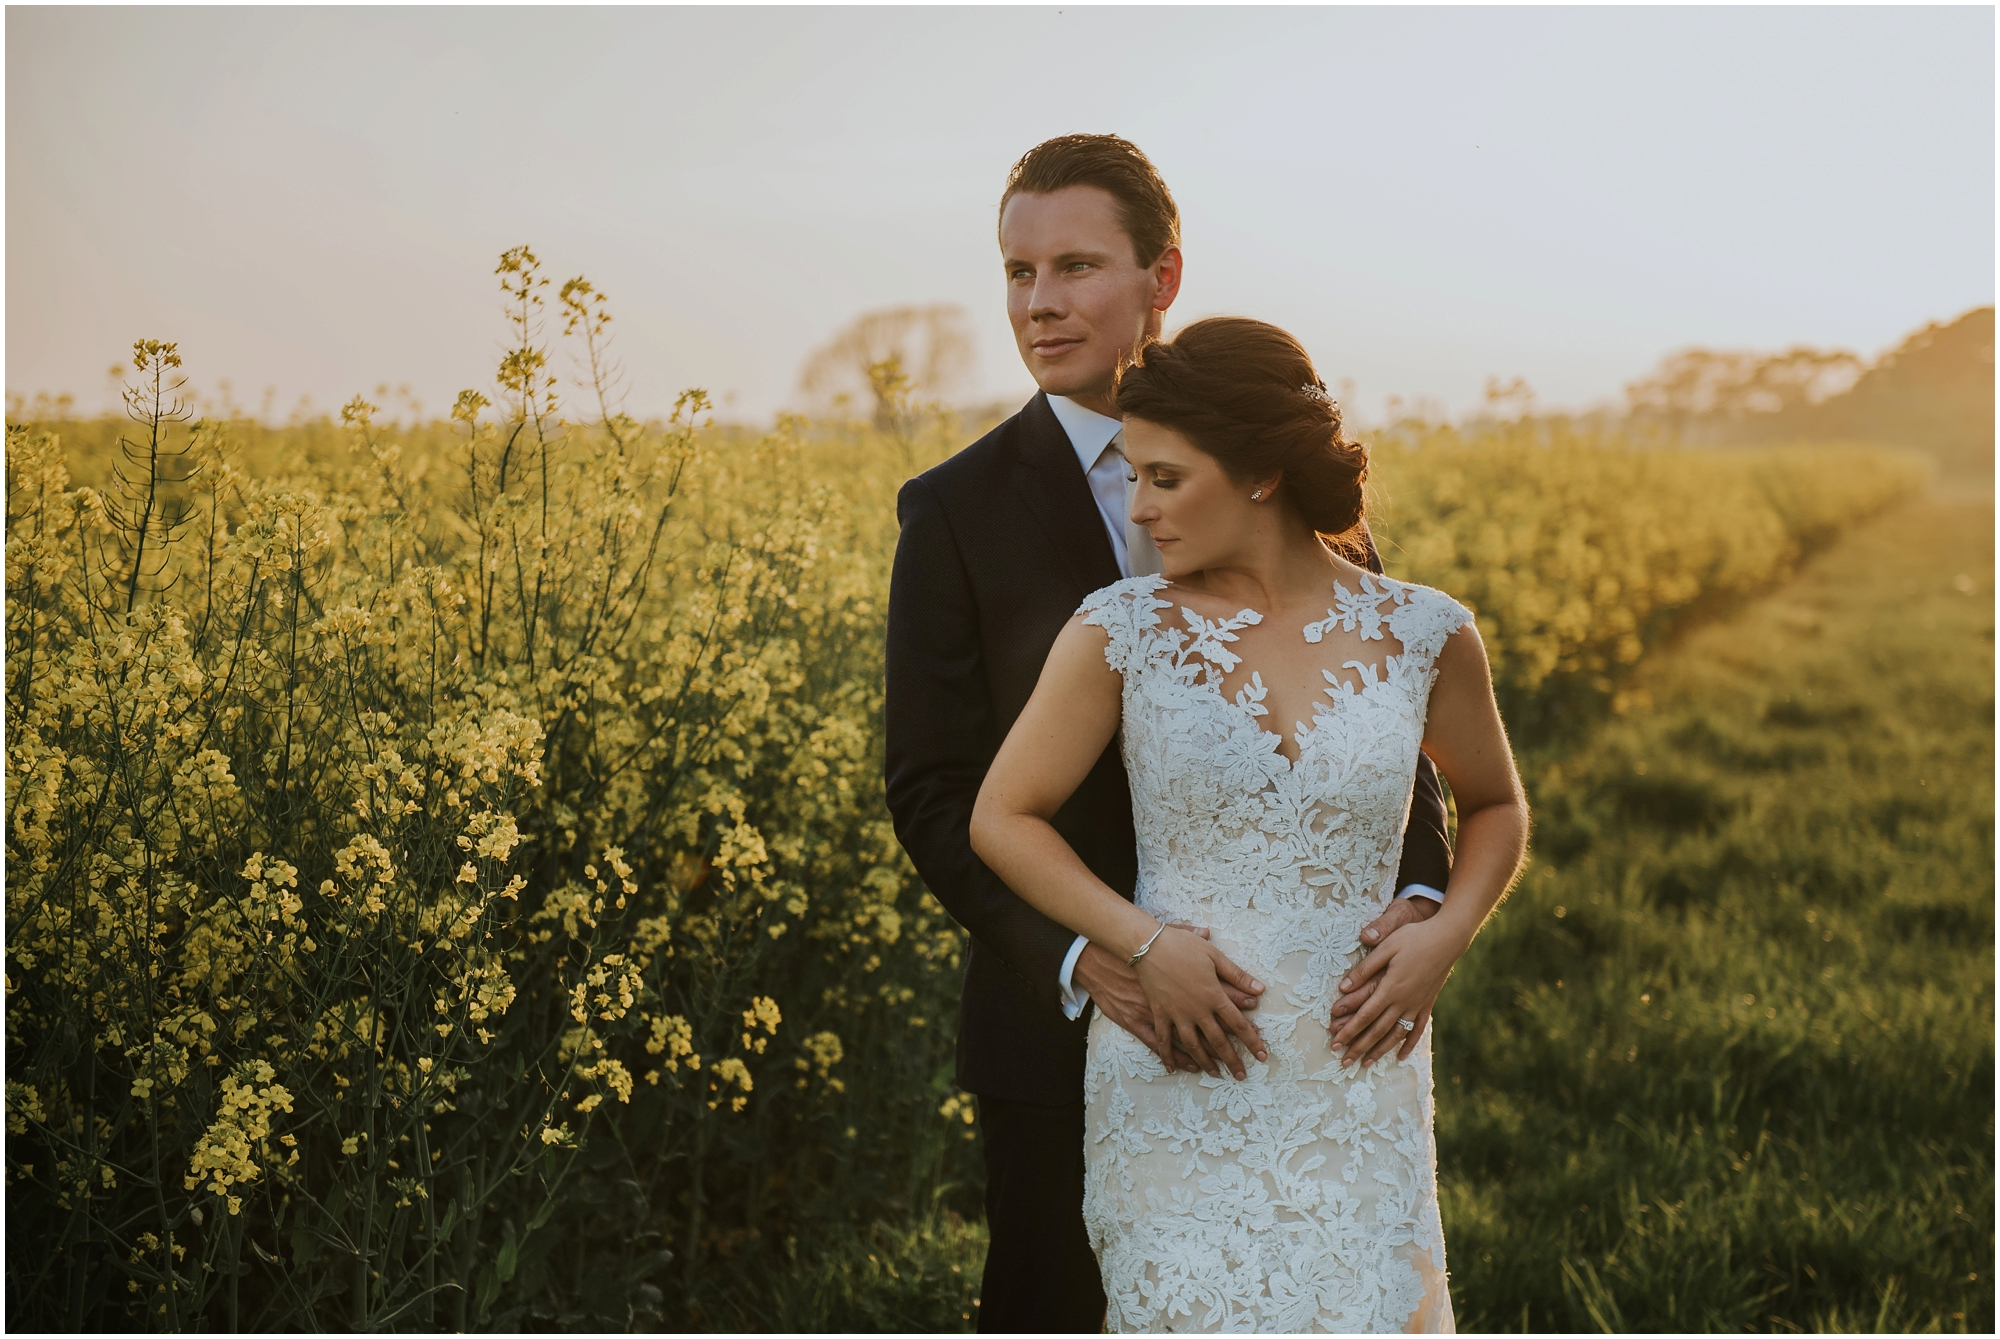 Sopley_Mill_Wedding_SamanthaDavisPhotography025.jpg